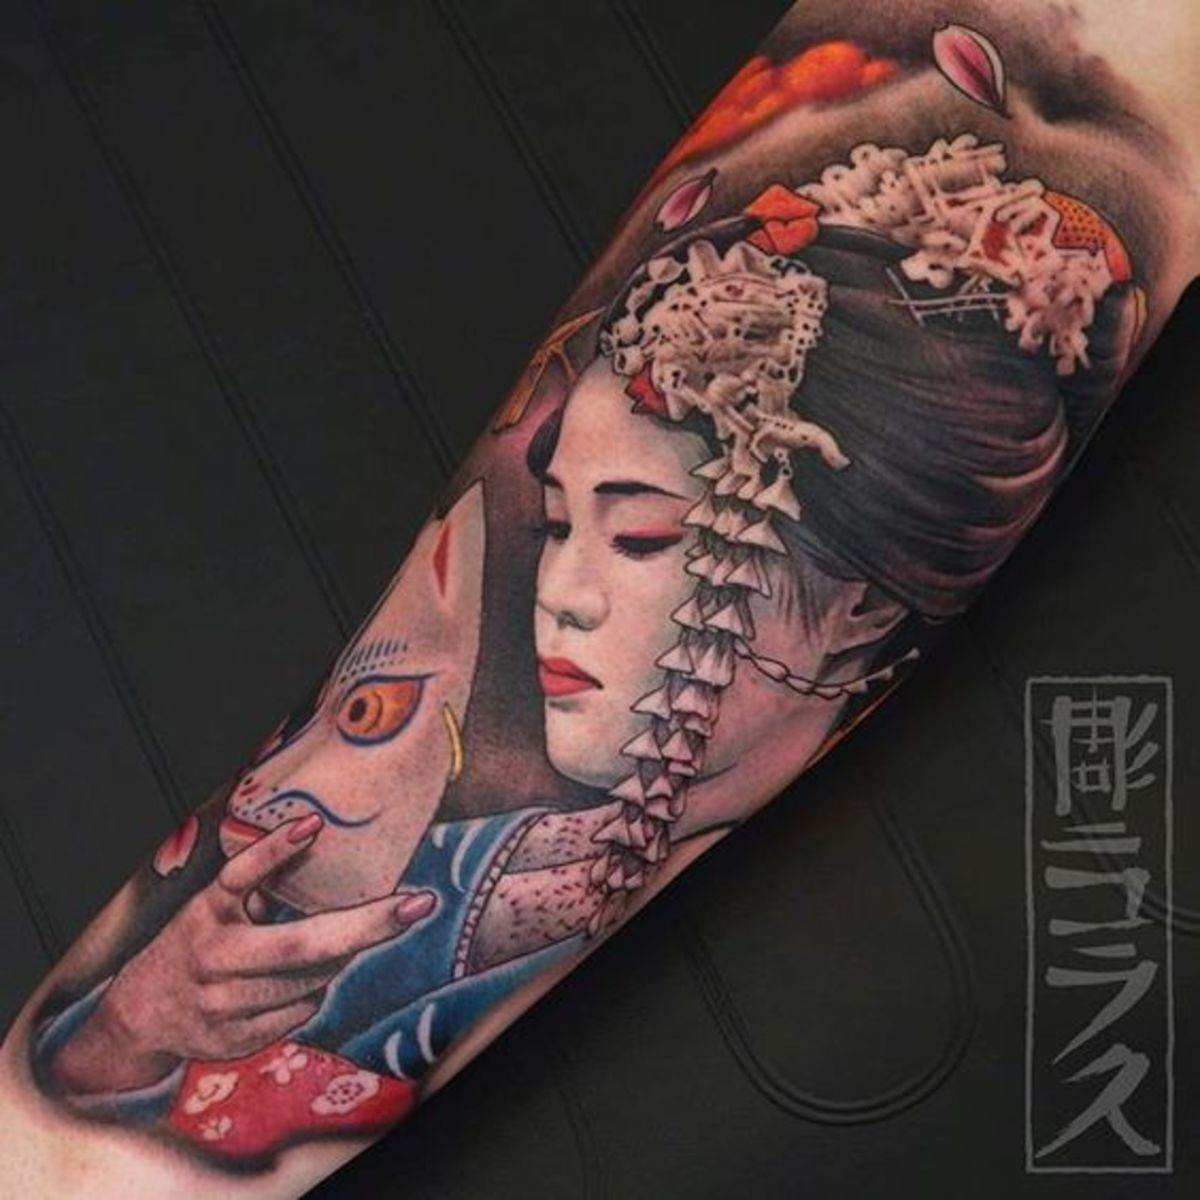 Geisha (or maiko) with kitsune mask.